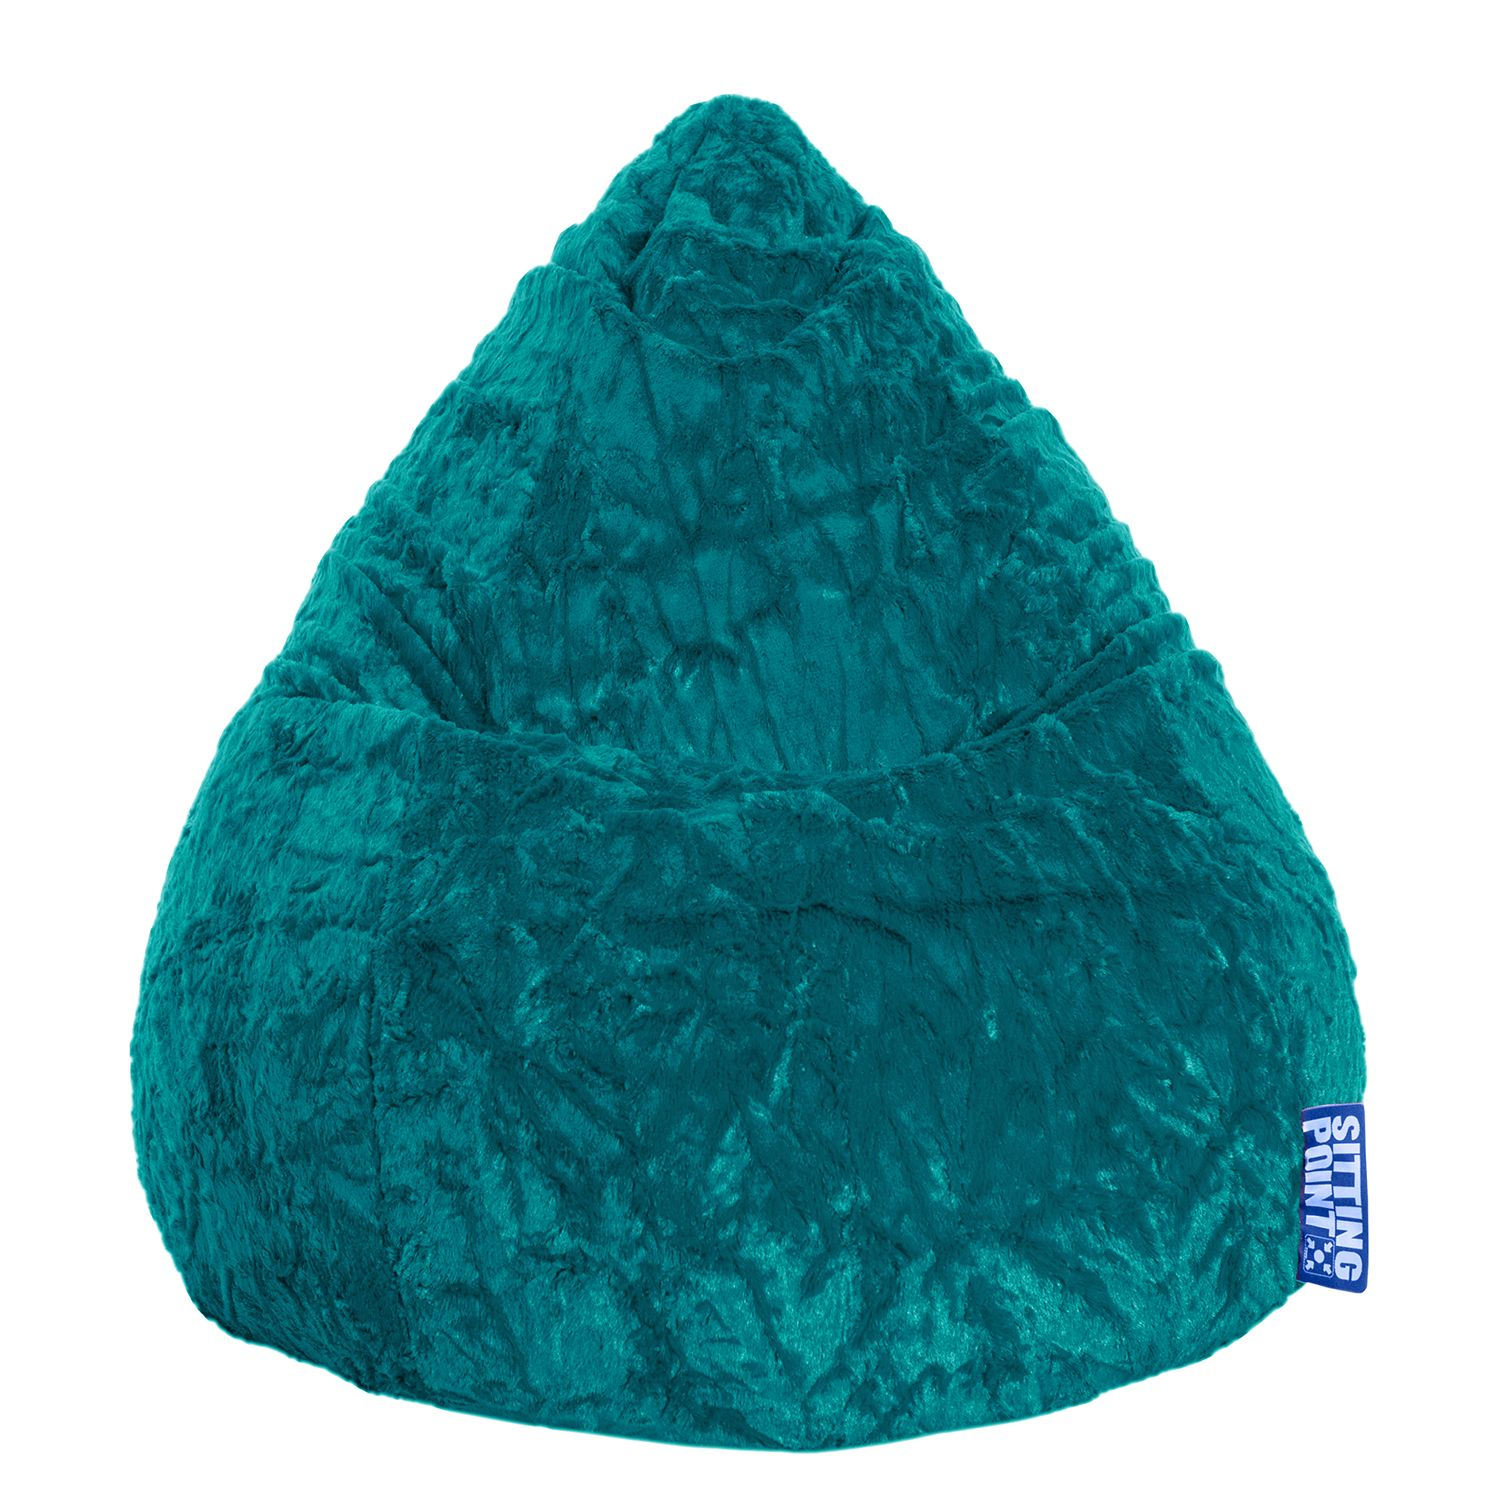 goedkoop Zitzak Fluffy XL blauw Smaragdgroen SITTING POINT